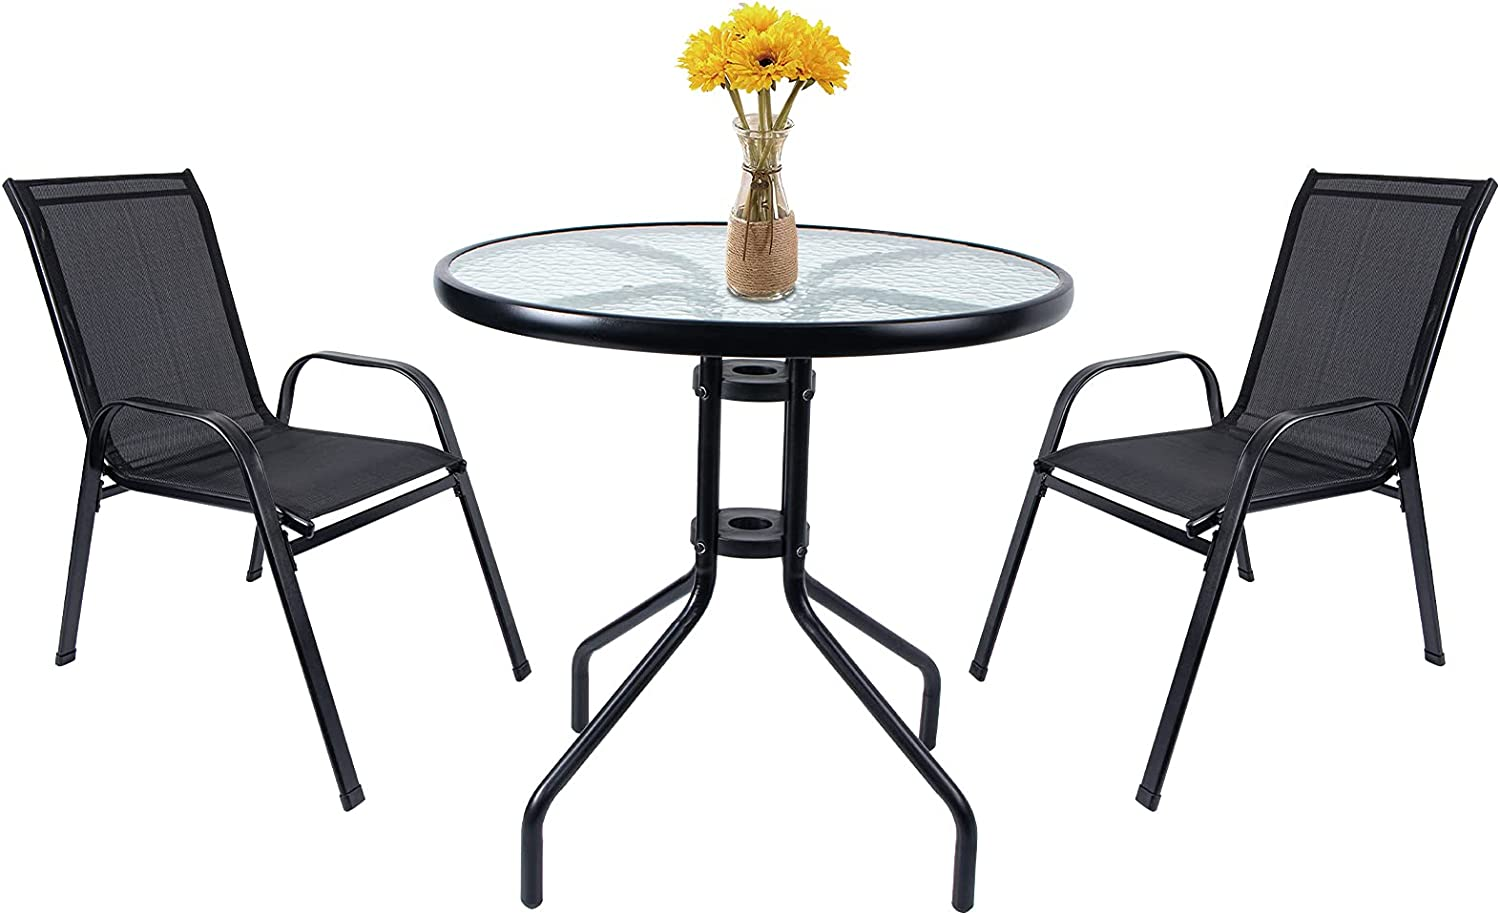 VCUTEKA 3-Piece Patio Table and Chair Patio Bistro Dining Furniture Set Outdoor with Textured Glass Table Top